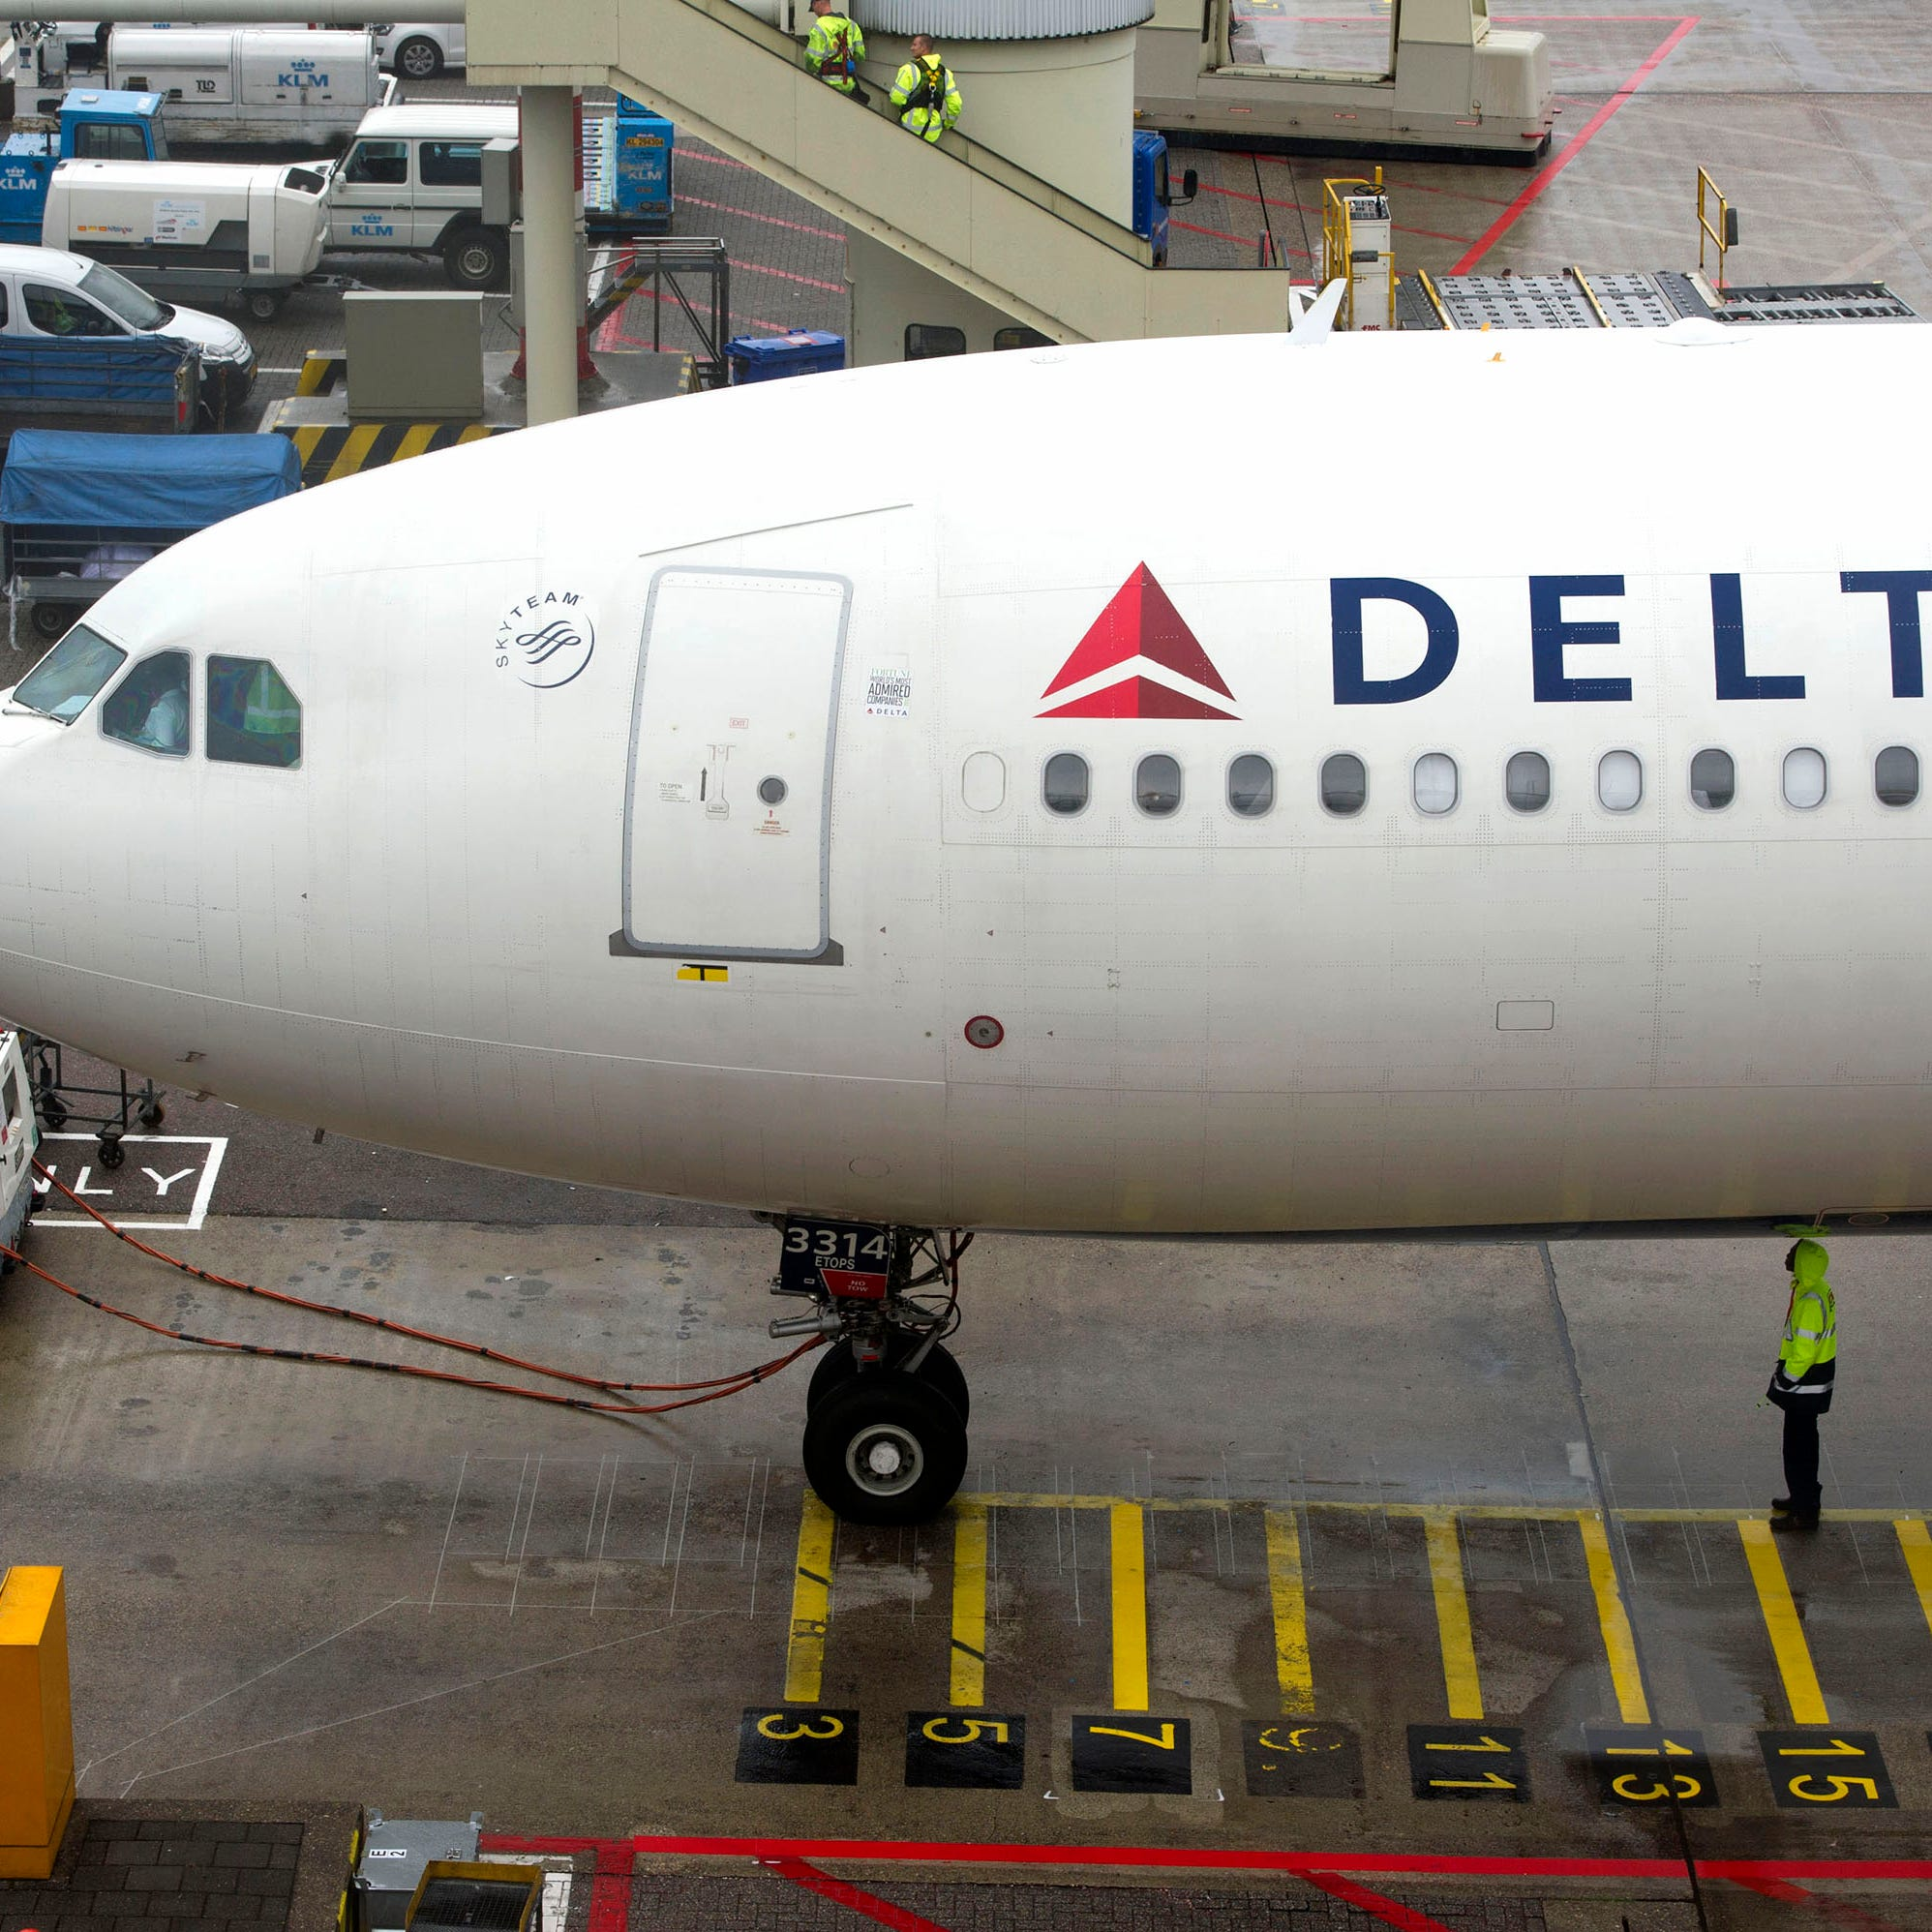 Delta: For long flights, leave your support animal at home